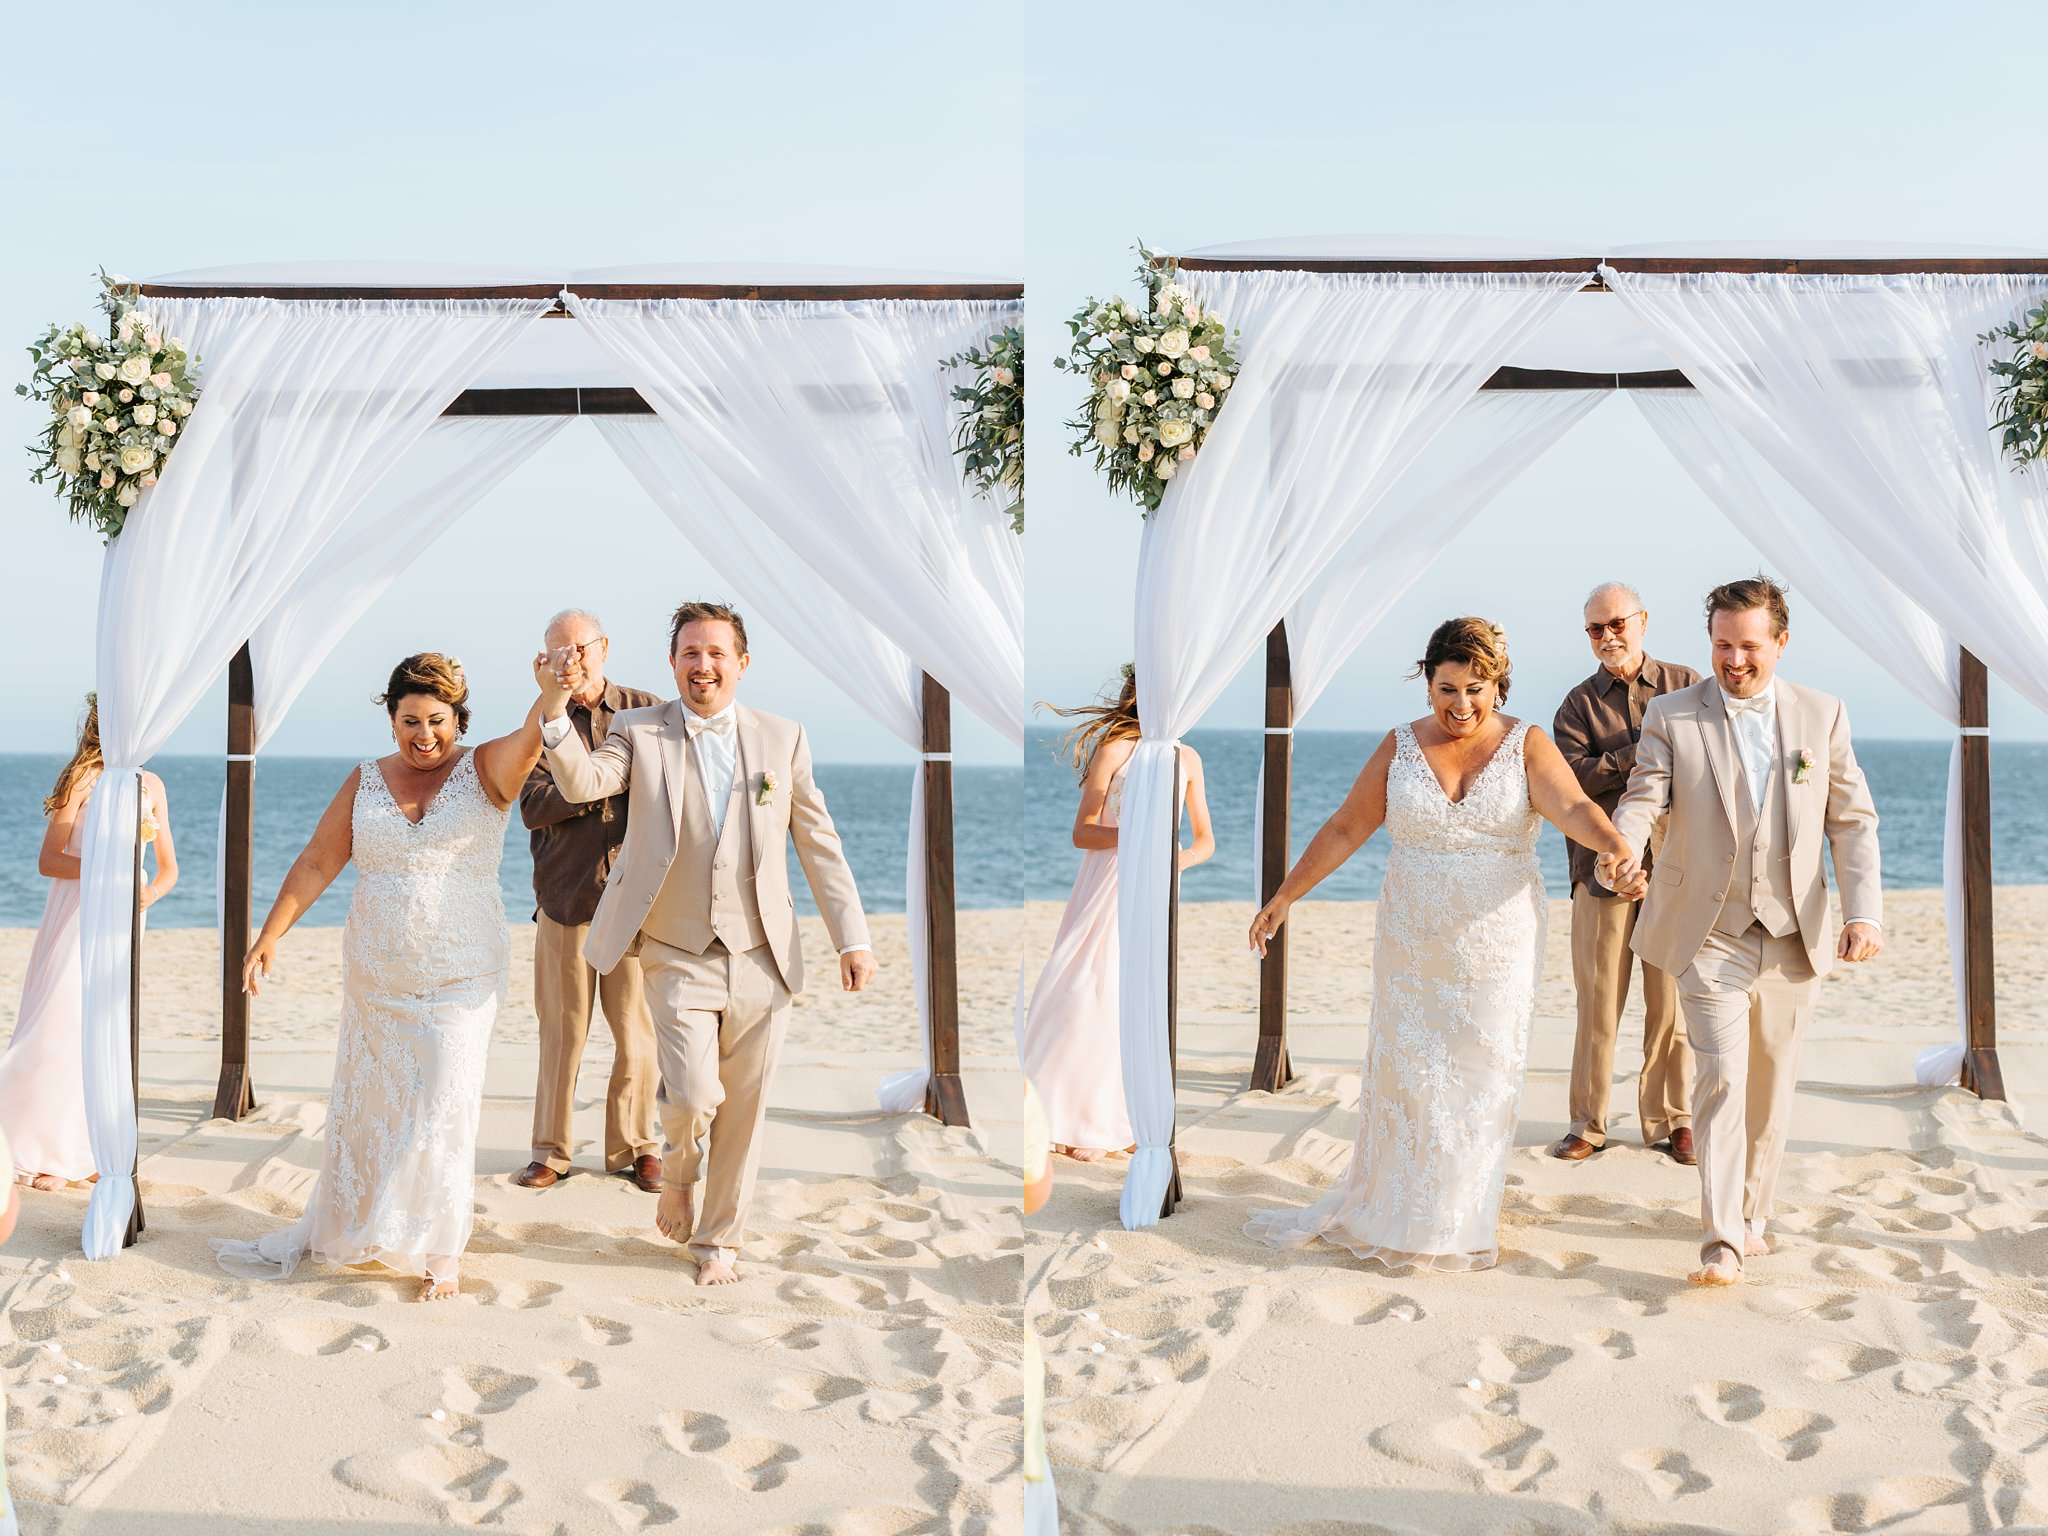 Beach Wedding in Cabo San Lucas, Mexico - https://brittneyhannonphotography.com